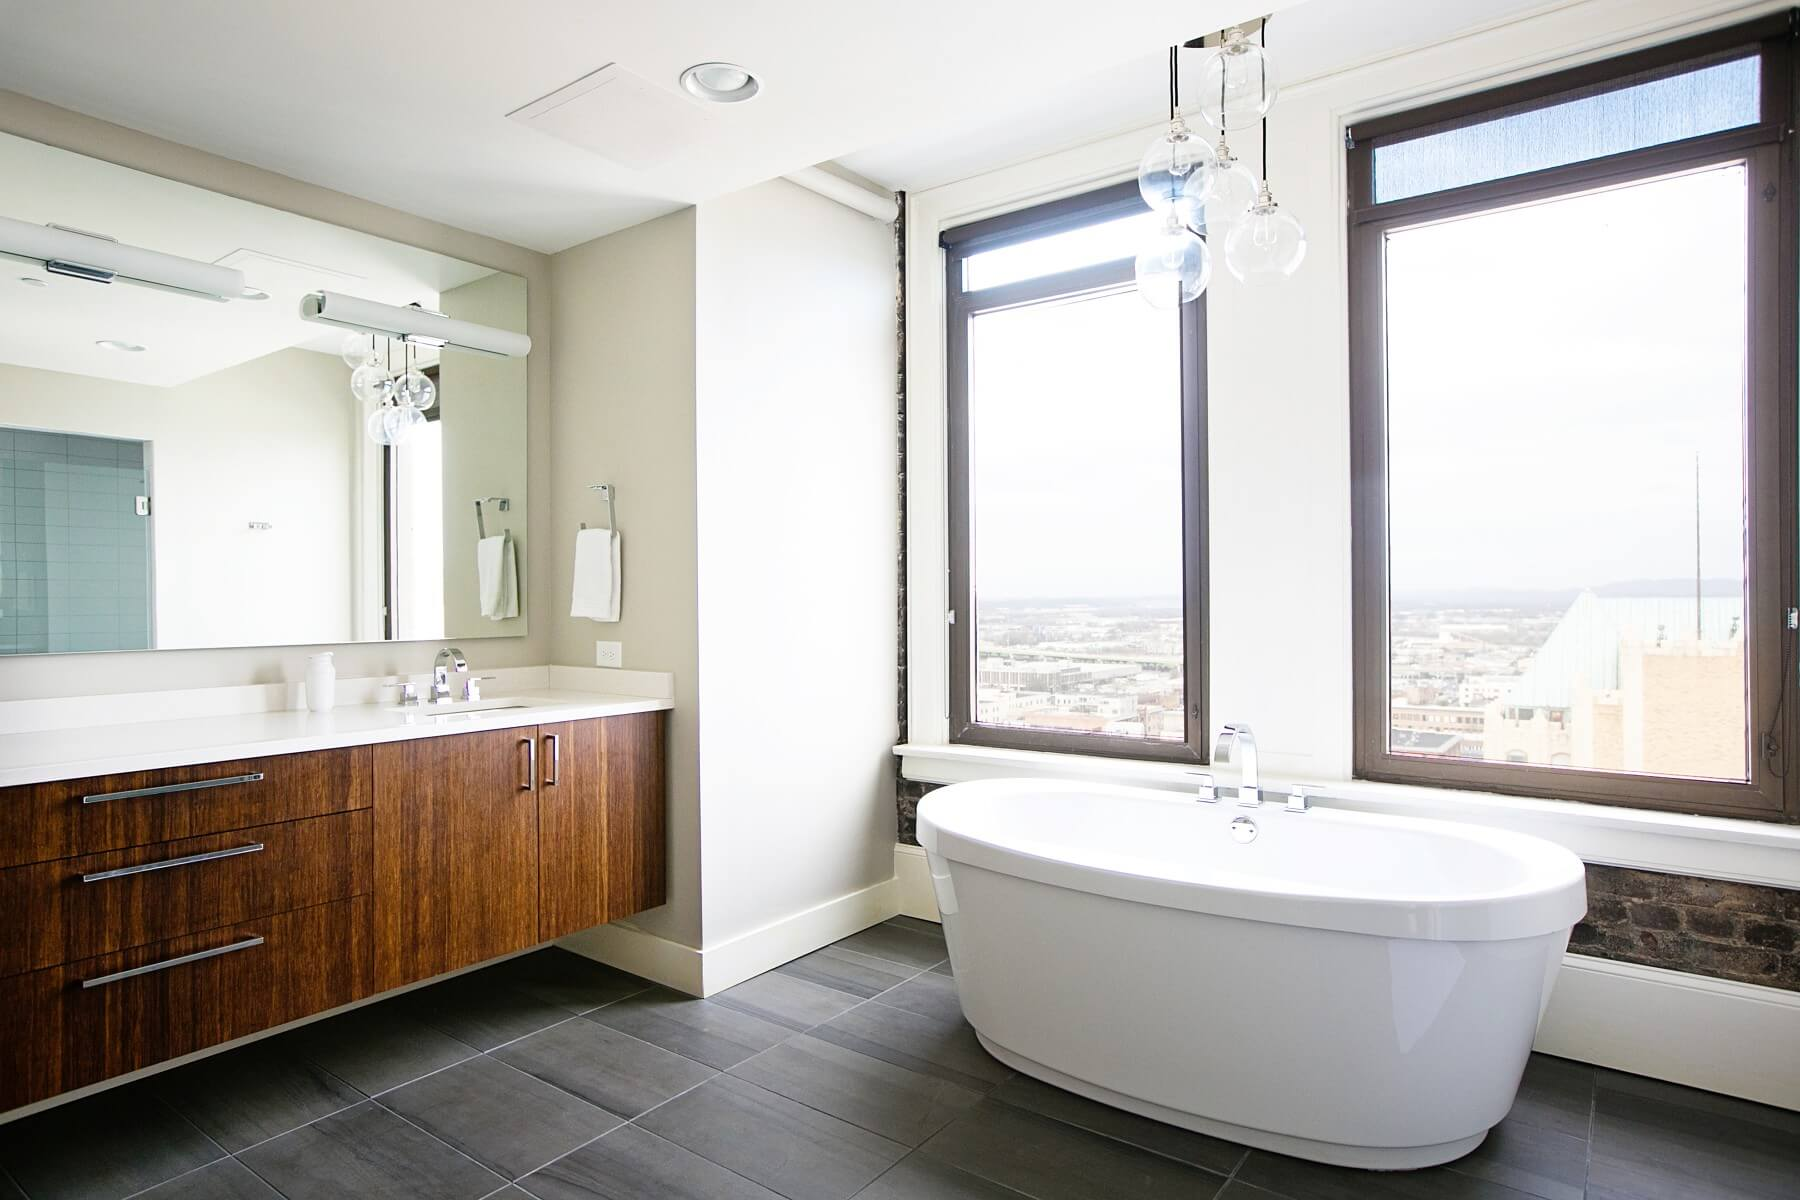 This gorgeous bathroom offers one of the best views of the Magic City from the 18th floor of the John Hand building. Image: Creature